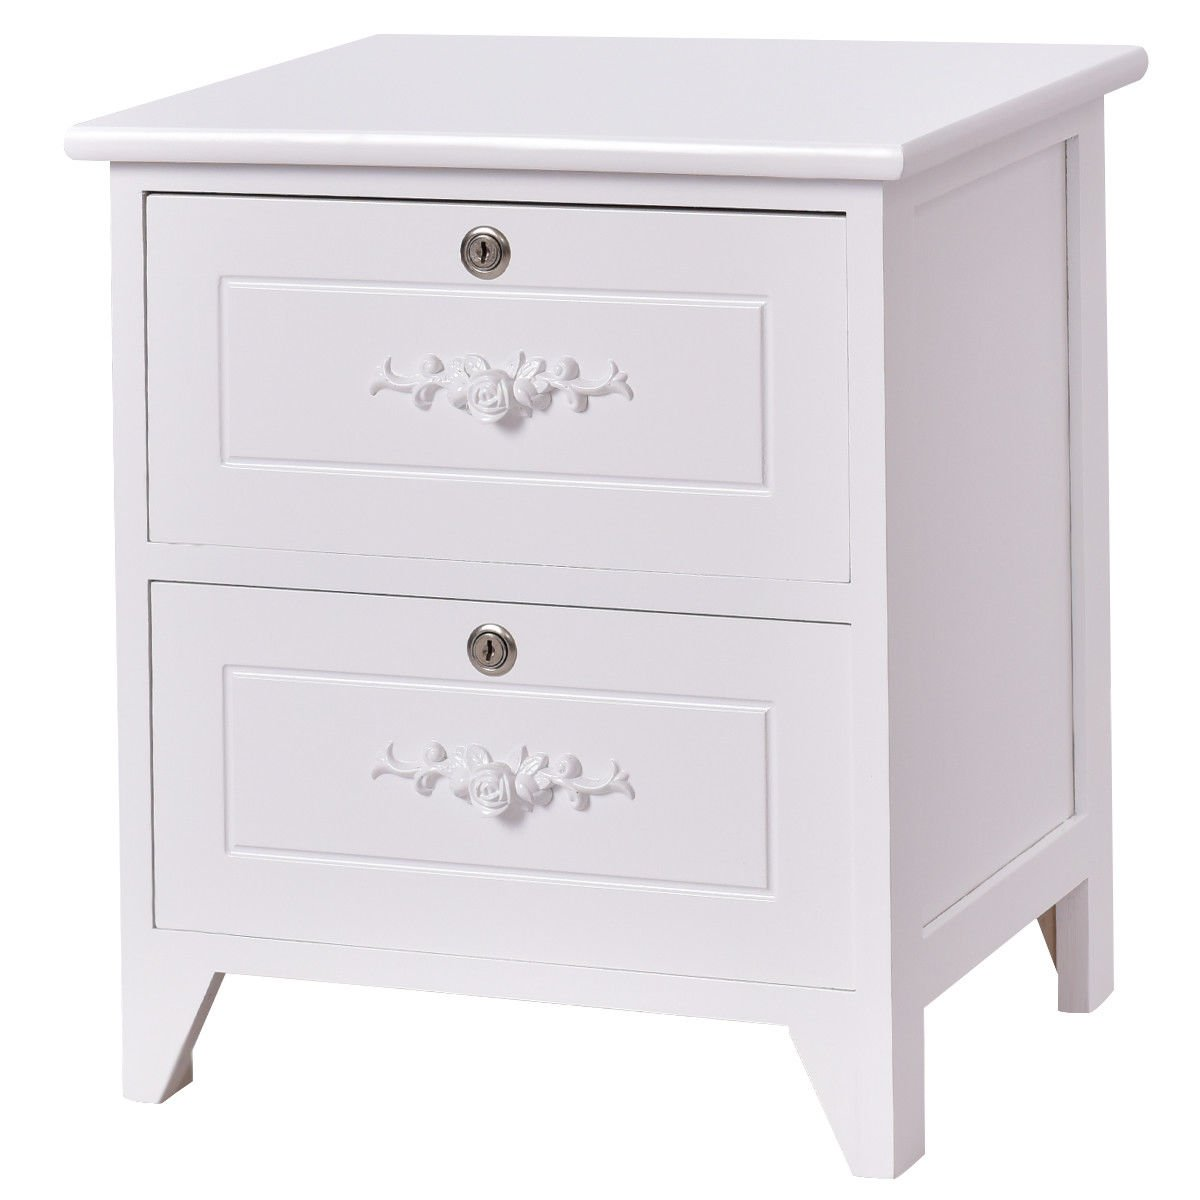 solid wood elegant night stand locking drawers ilwidl two bedroom end tables storage shelf table vintage white kitchen dining rod iron coffee base ashley furniture tibbee sofa